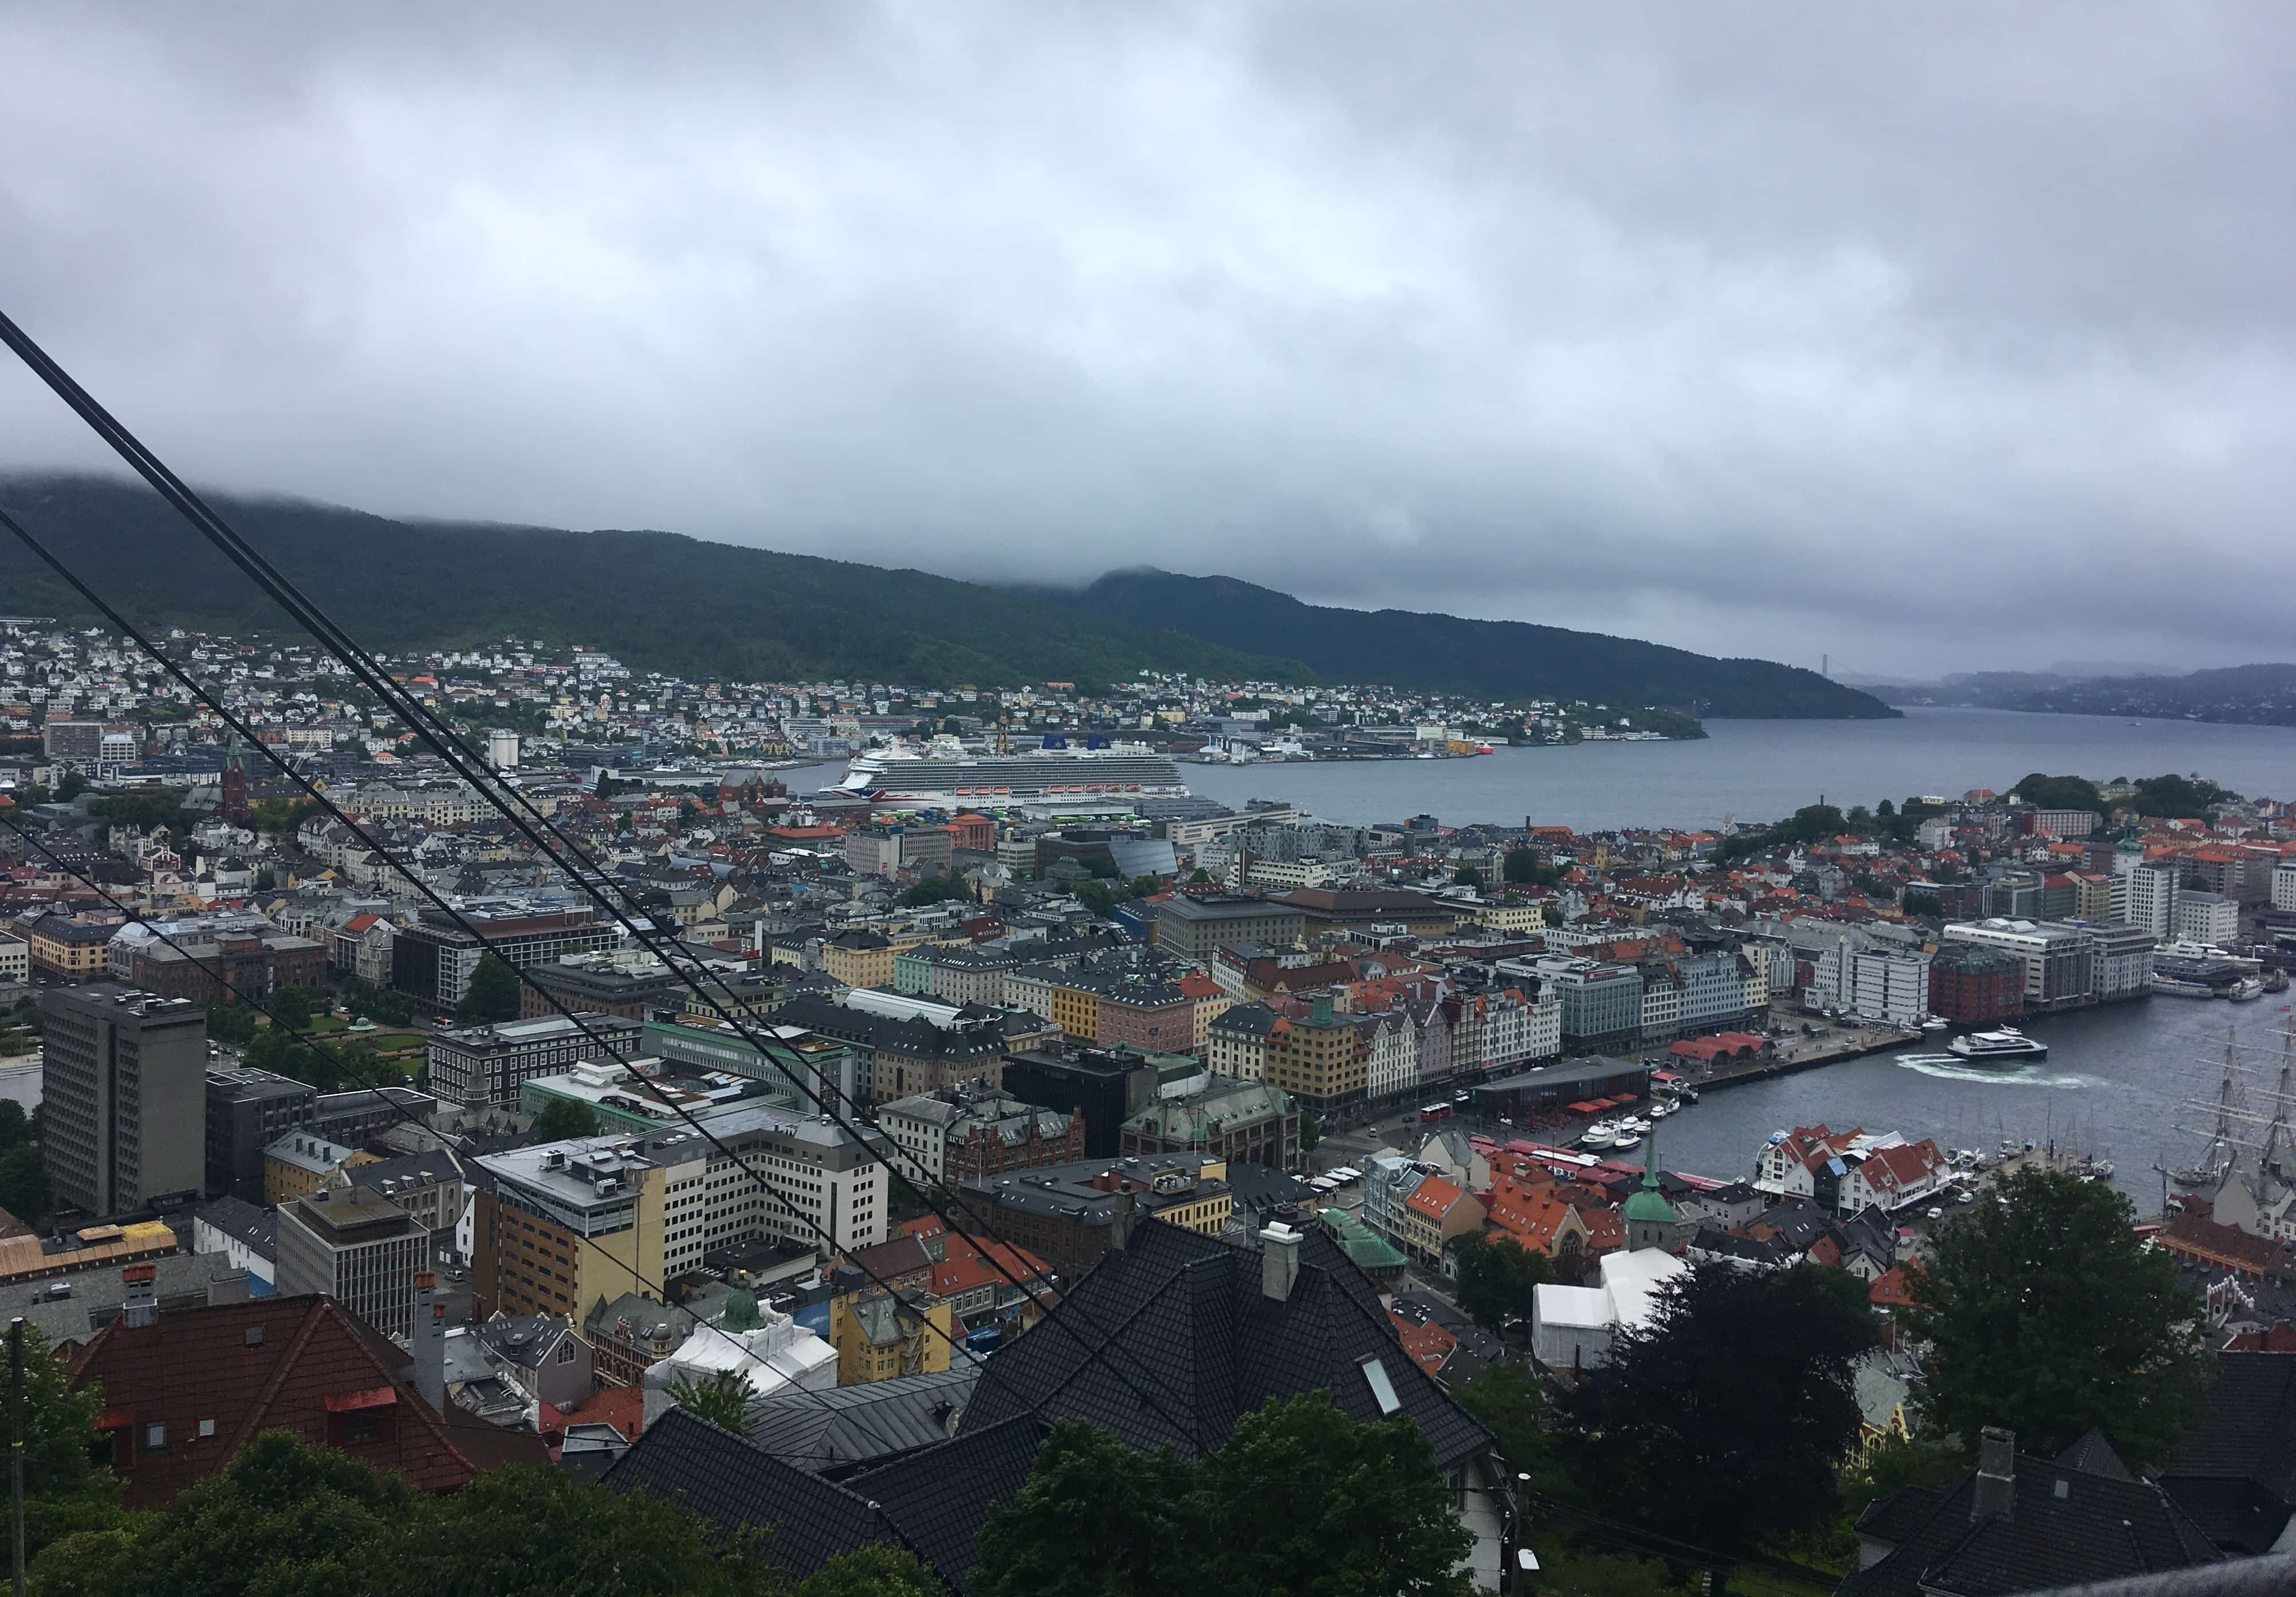 view from funicular railway in bergen walk down cable car